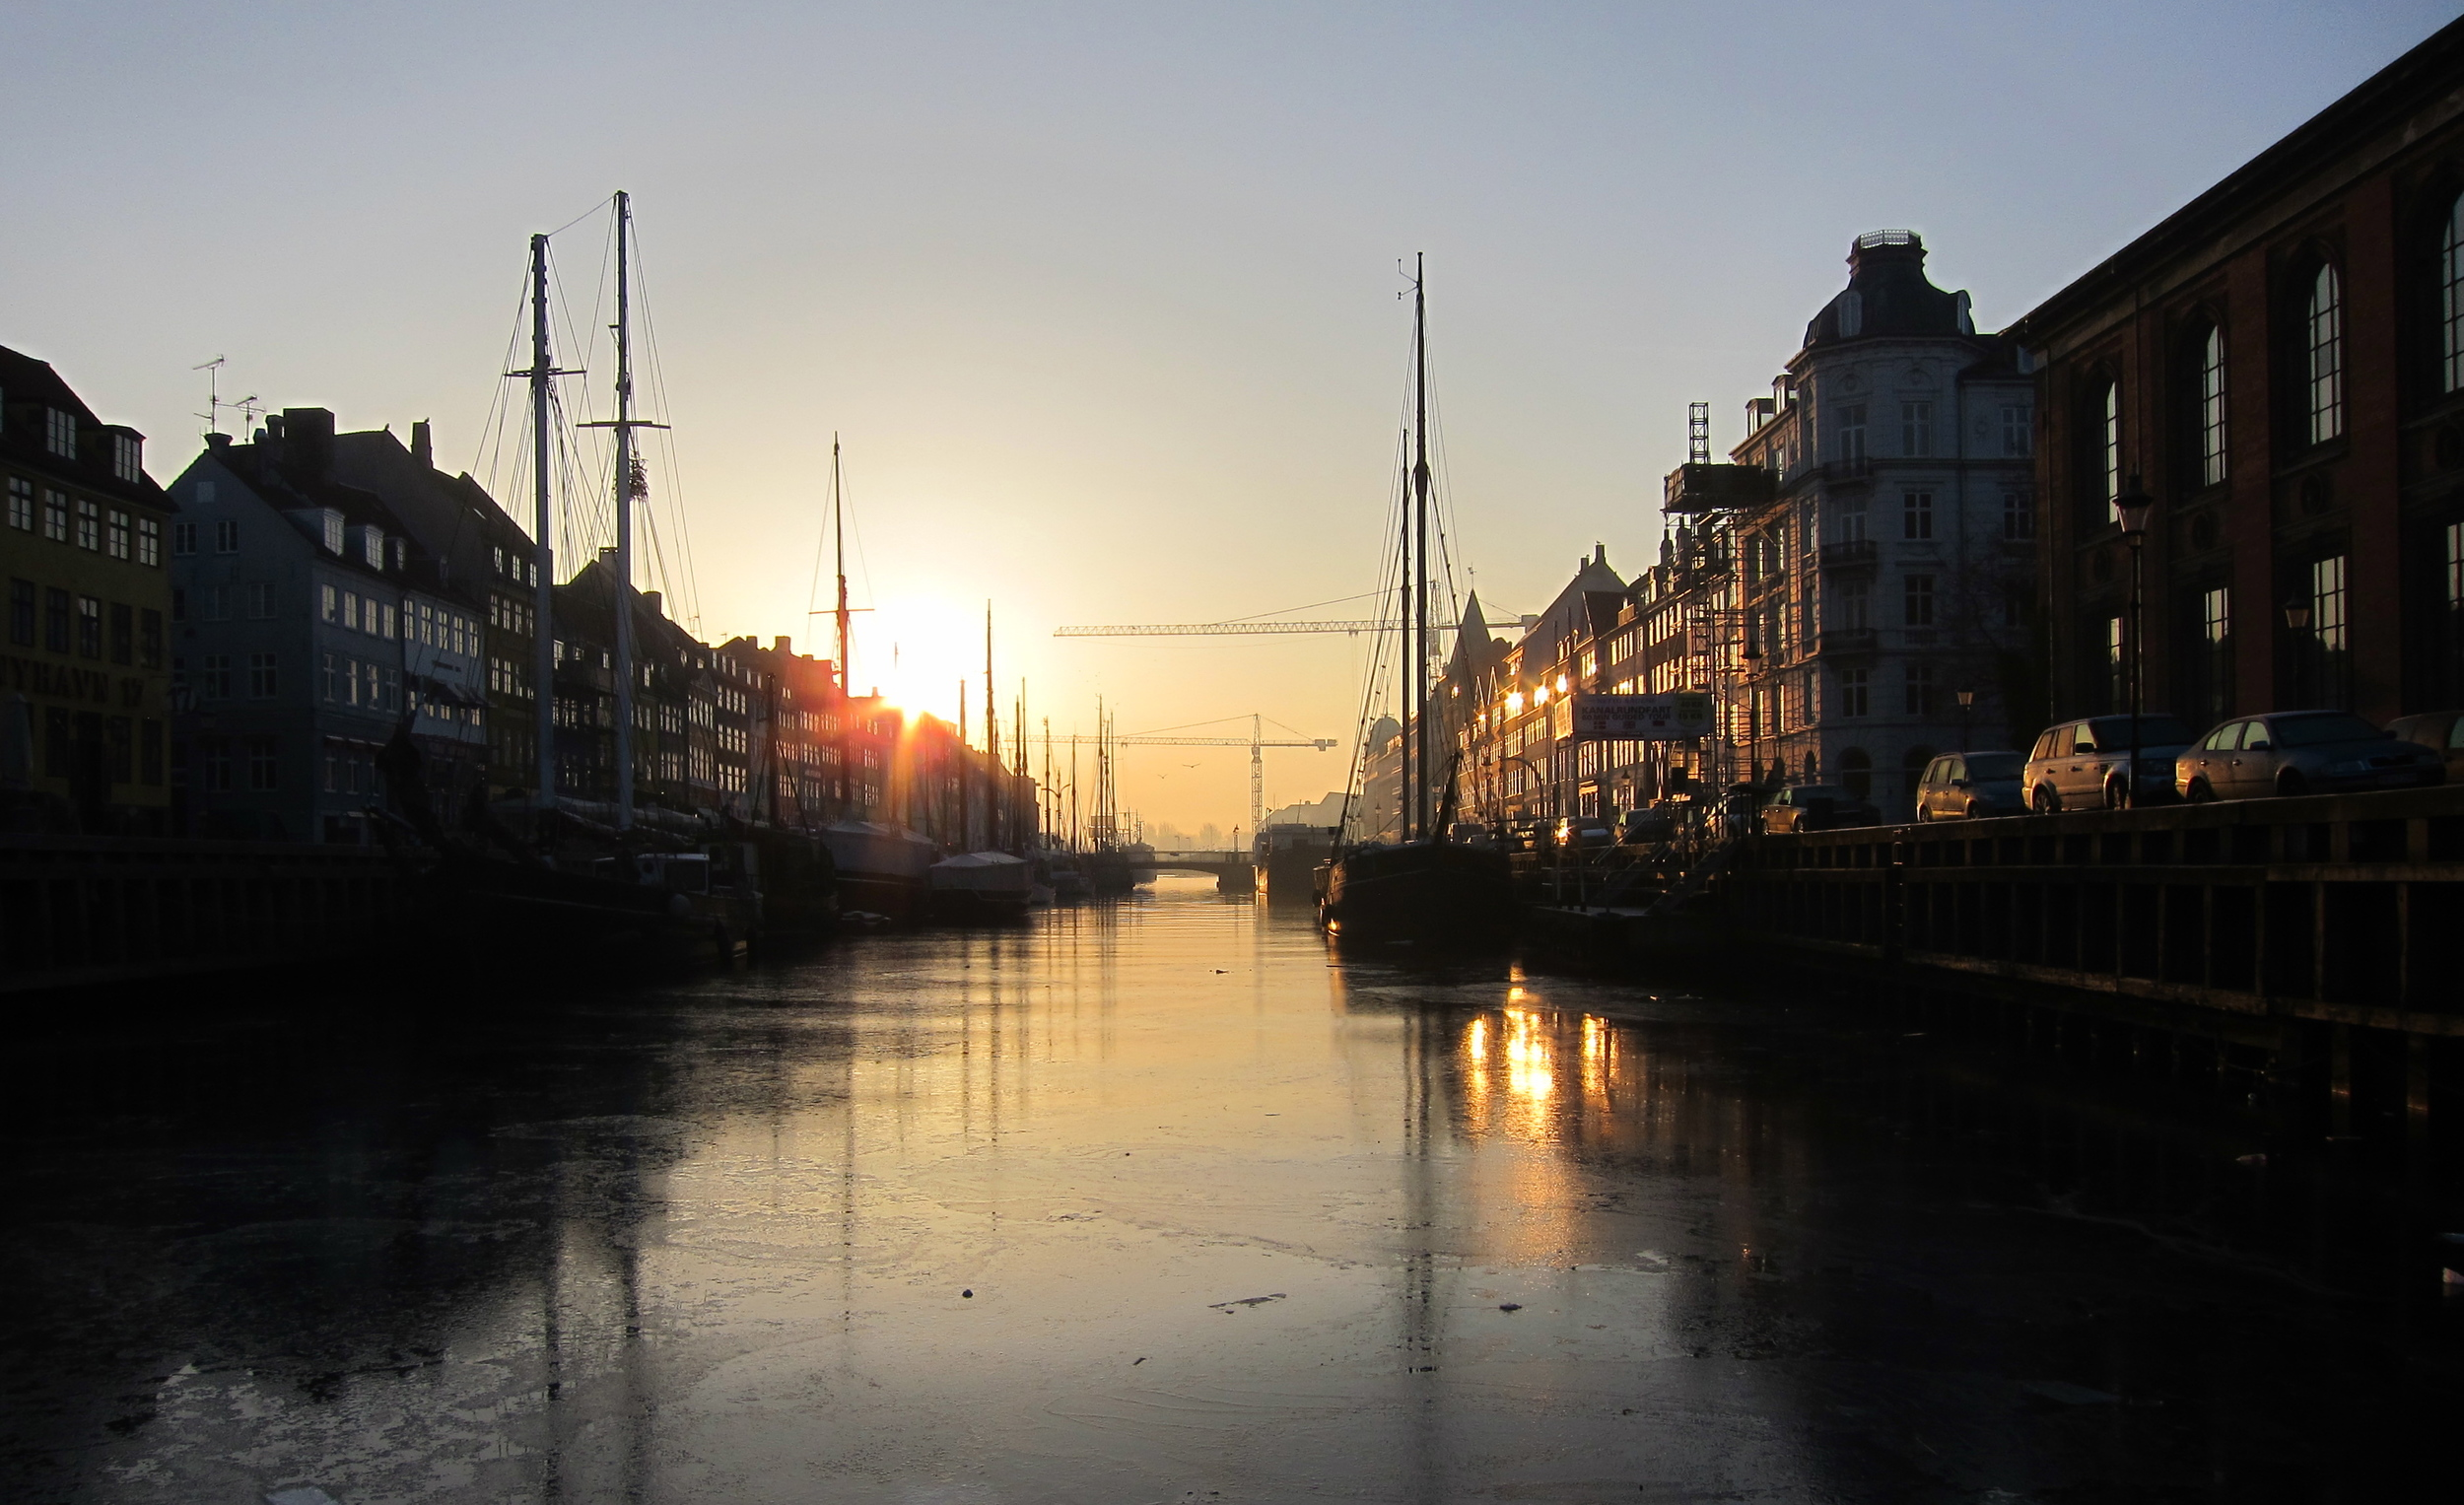 Nyhavn this morning